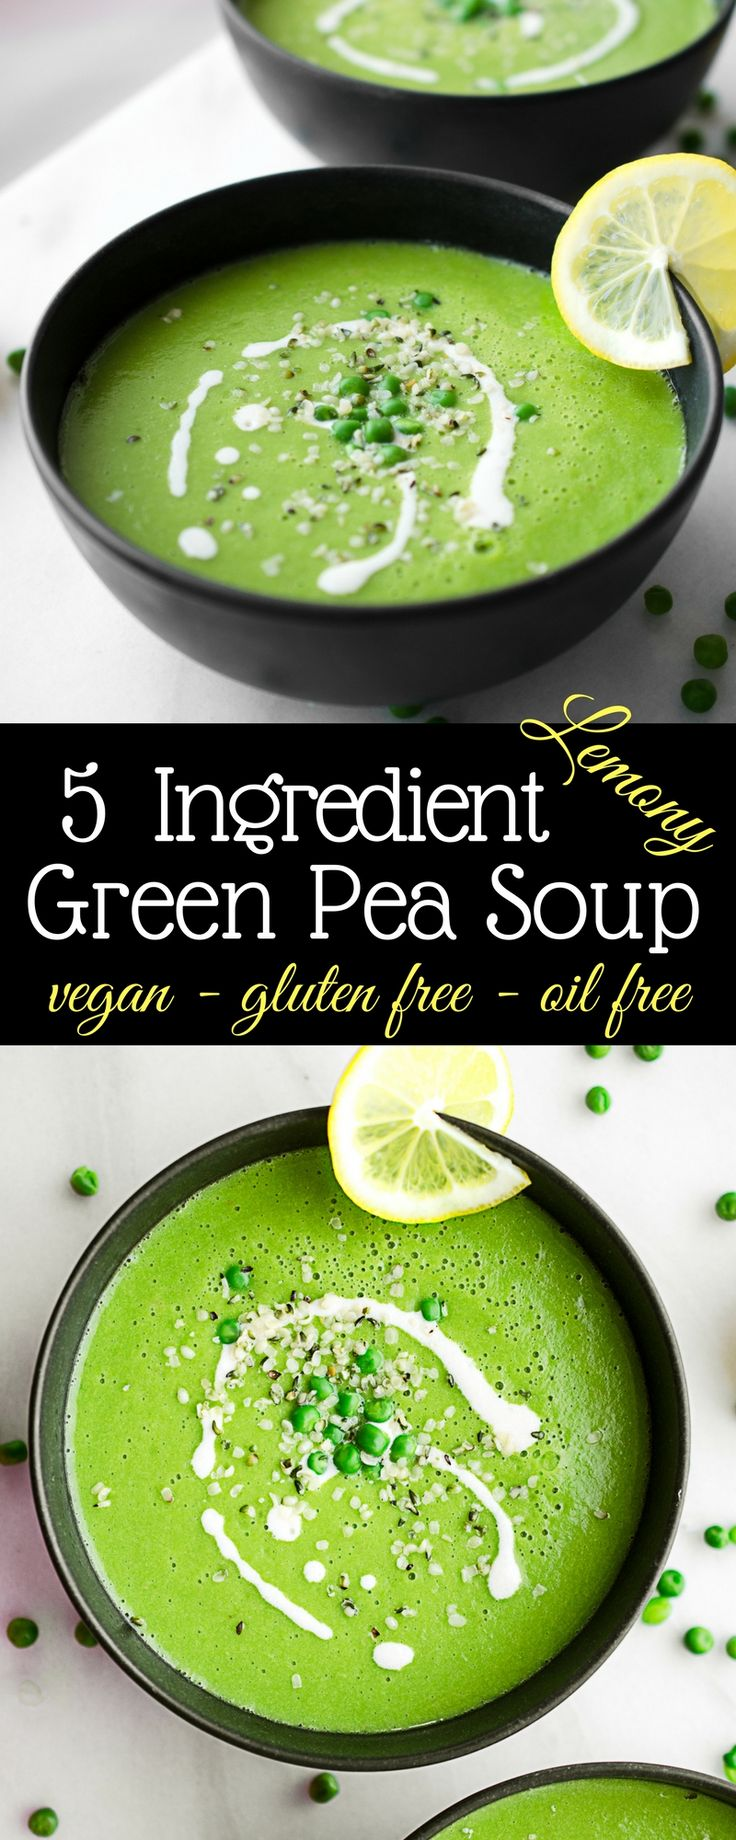 Healthy vegan Green Pea Soup! This 5 Ingredient healthy soup is simple yet satisfying! Vegan gluten free soup, easy soup recipes! Gluten free vegan plant based recipes!